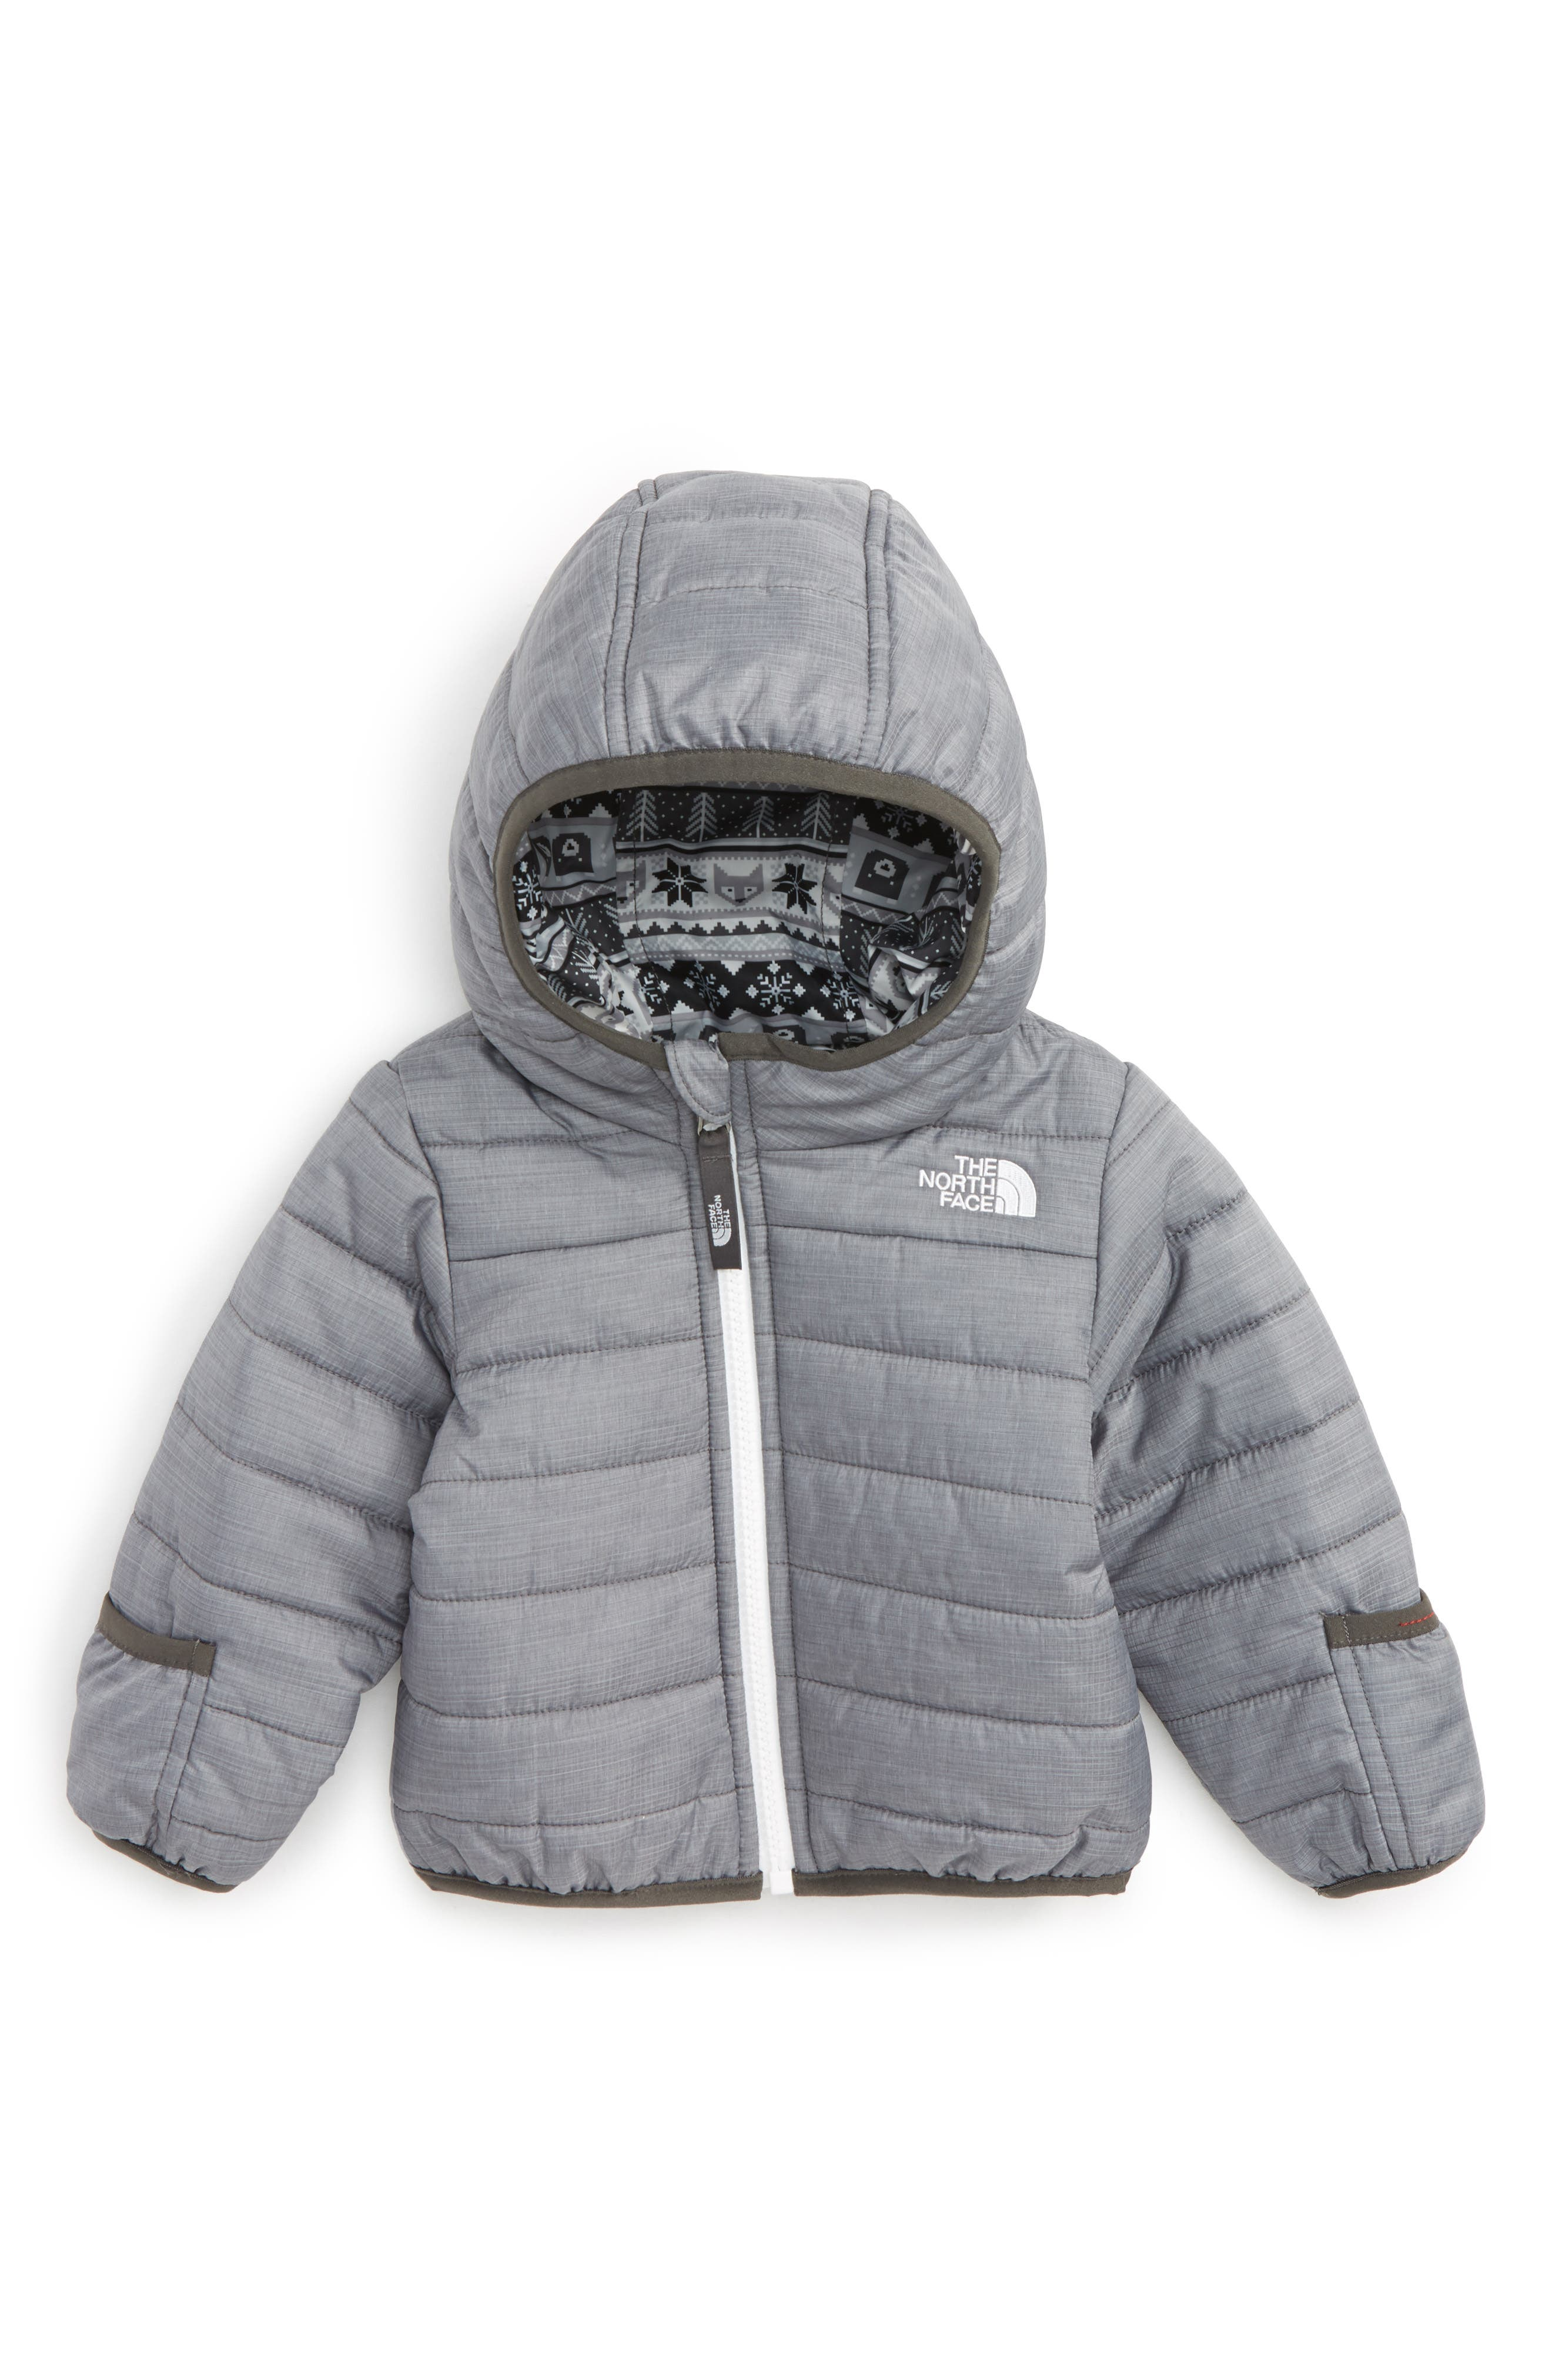 Alternate Image 1 Selected - The North Face 'Perrito' Reversible Water Repellent Hooded Jacket (Baby Boys)